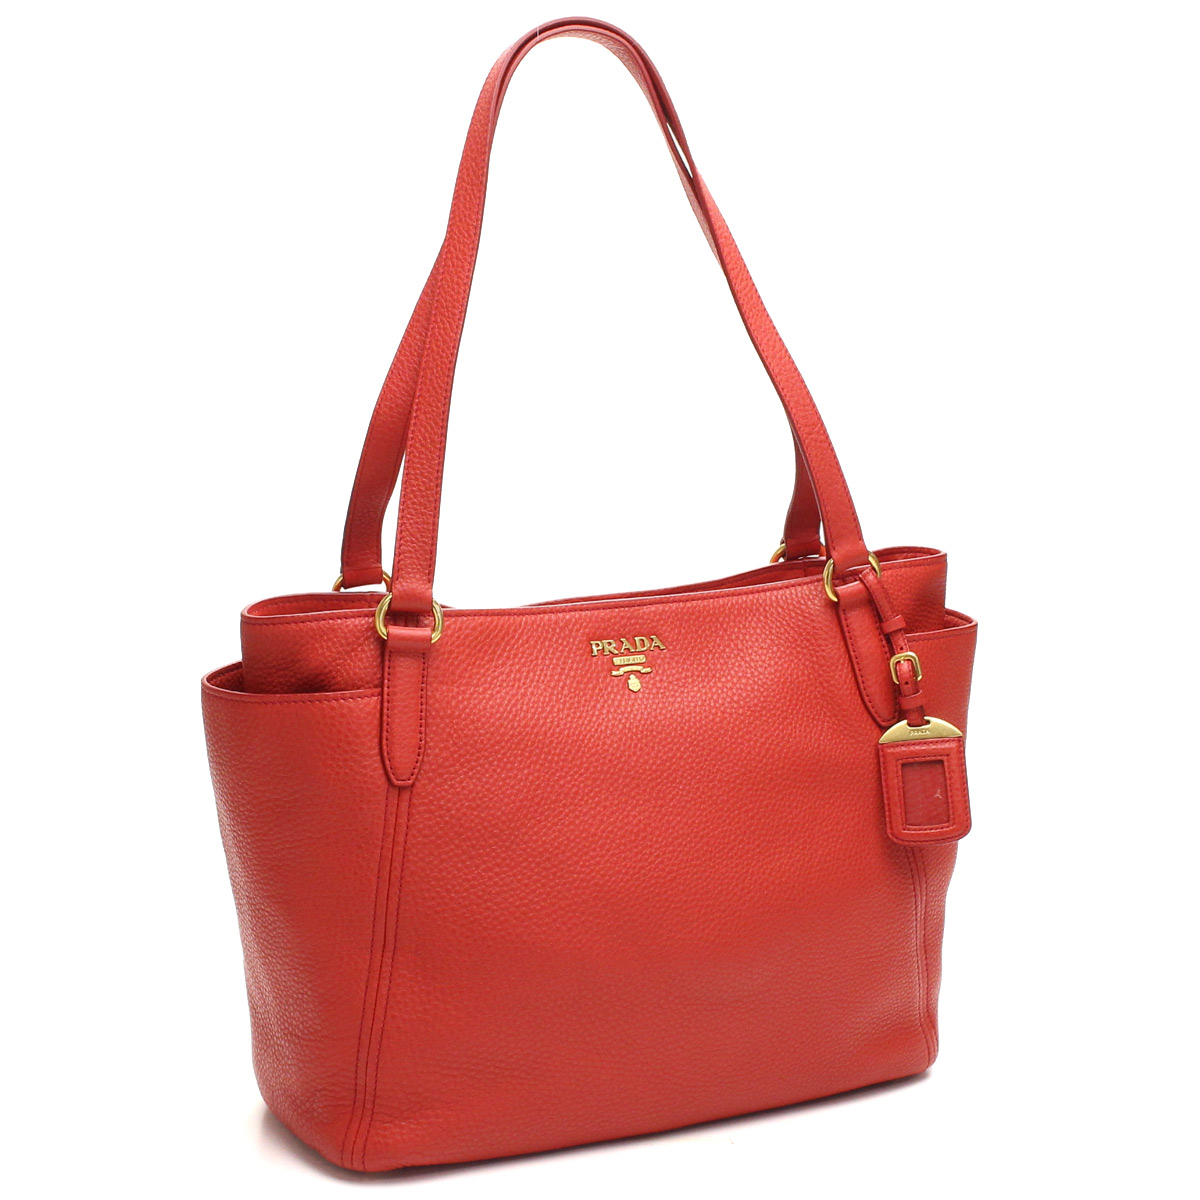 7512dffdd05a Bighit The total brand wholesale  Prada outlet PRADA (OUTLET) tote bag  BR4970-O-UWL-F0011 ROSSO red series( taxfree send by EMS authentic A brand  new item ) ...